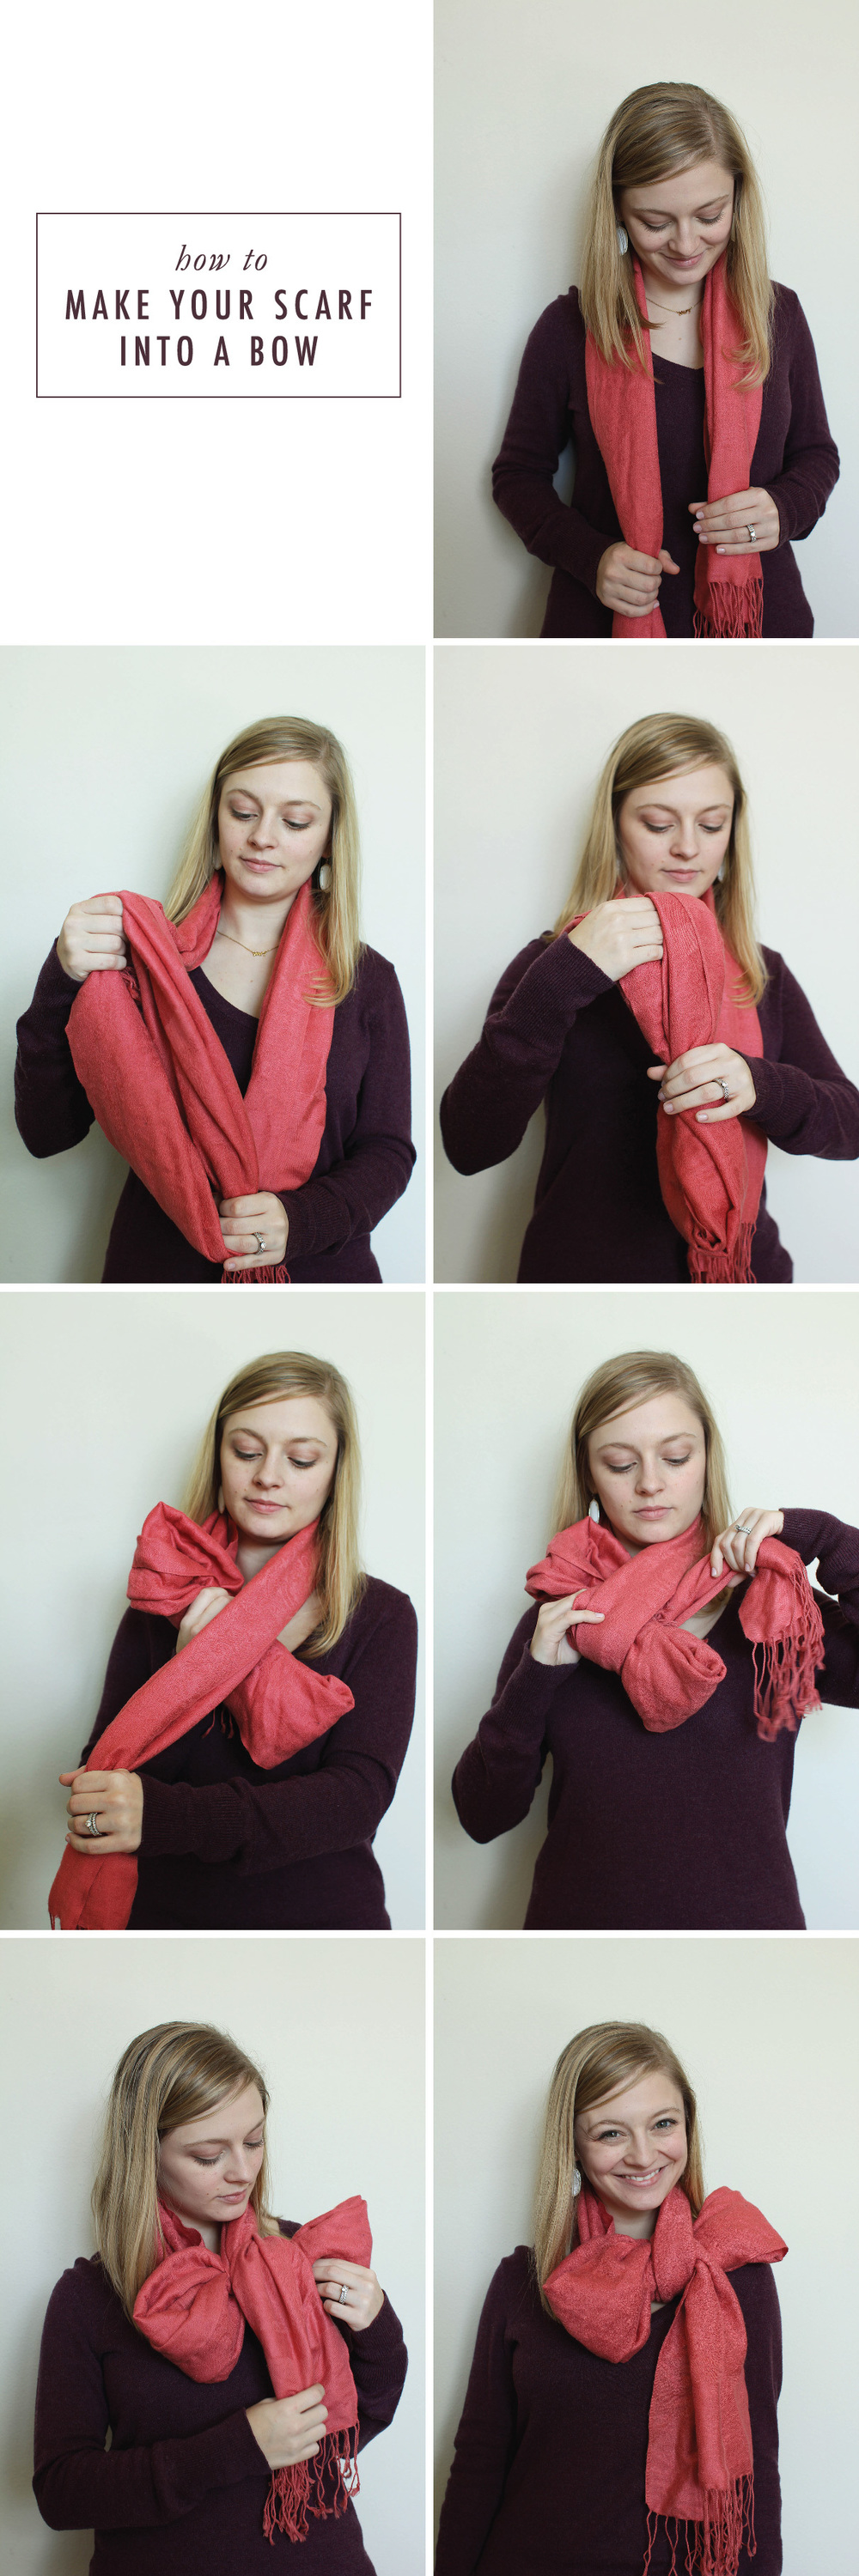 How To Make Your Scarf Into a Bow | That's Pretty Ace